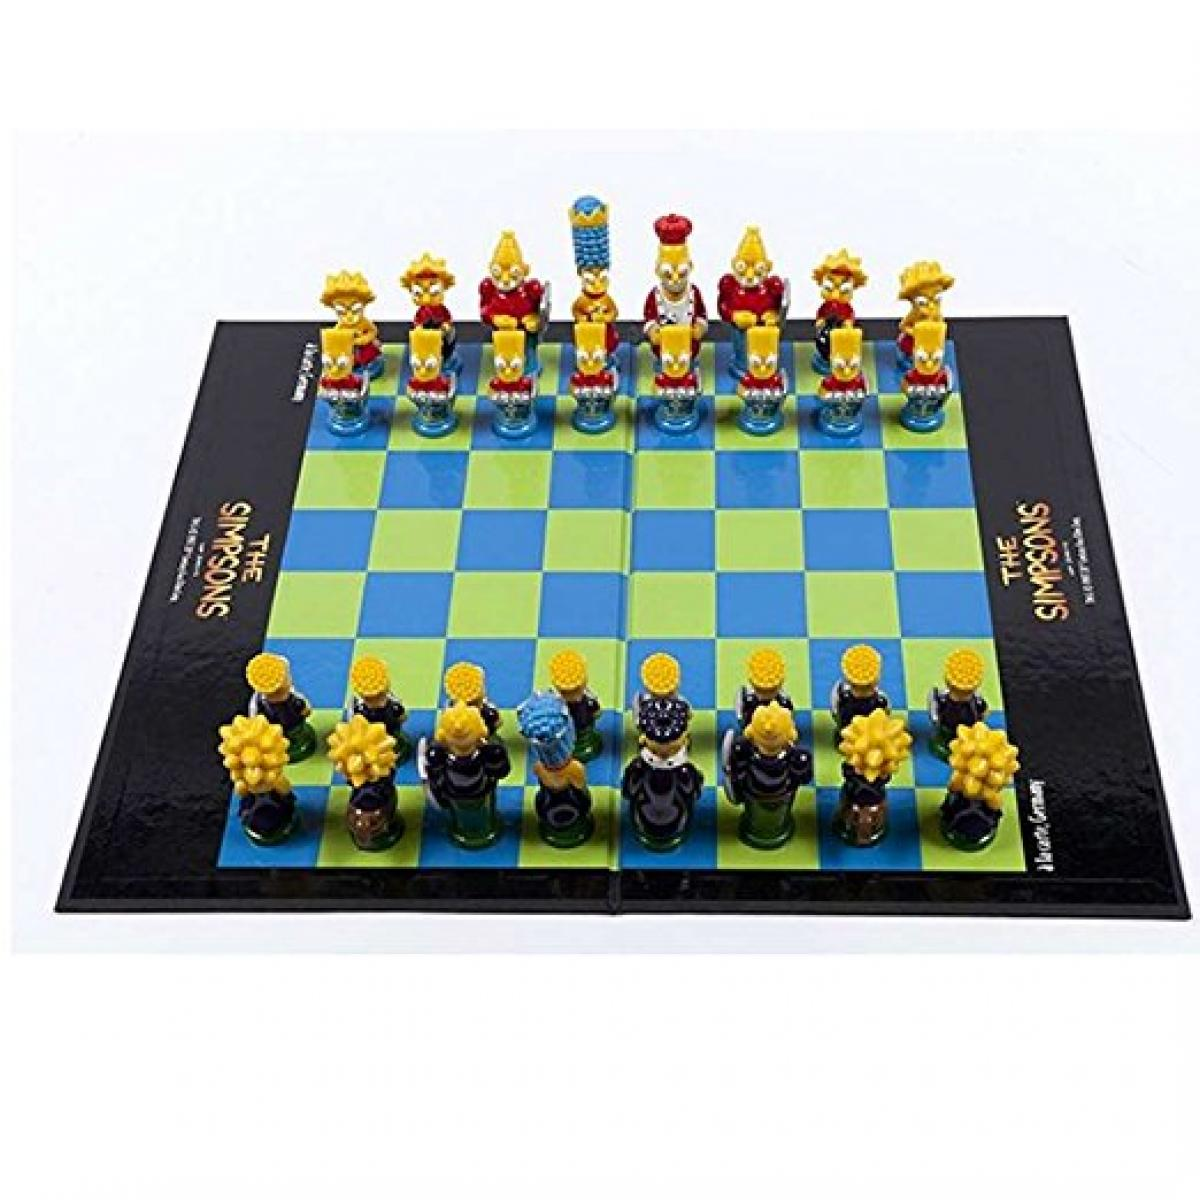 The Simpsons 3D Chess Set